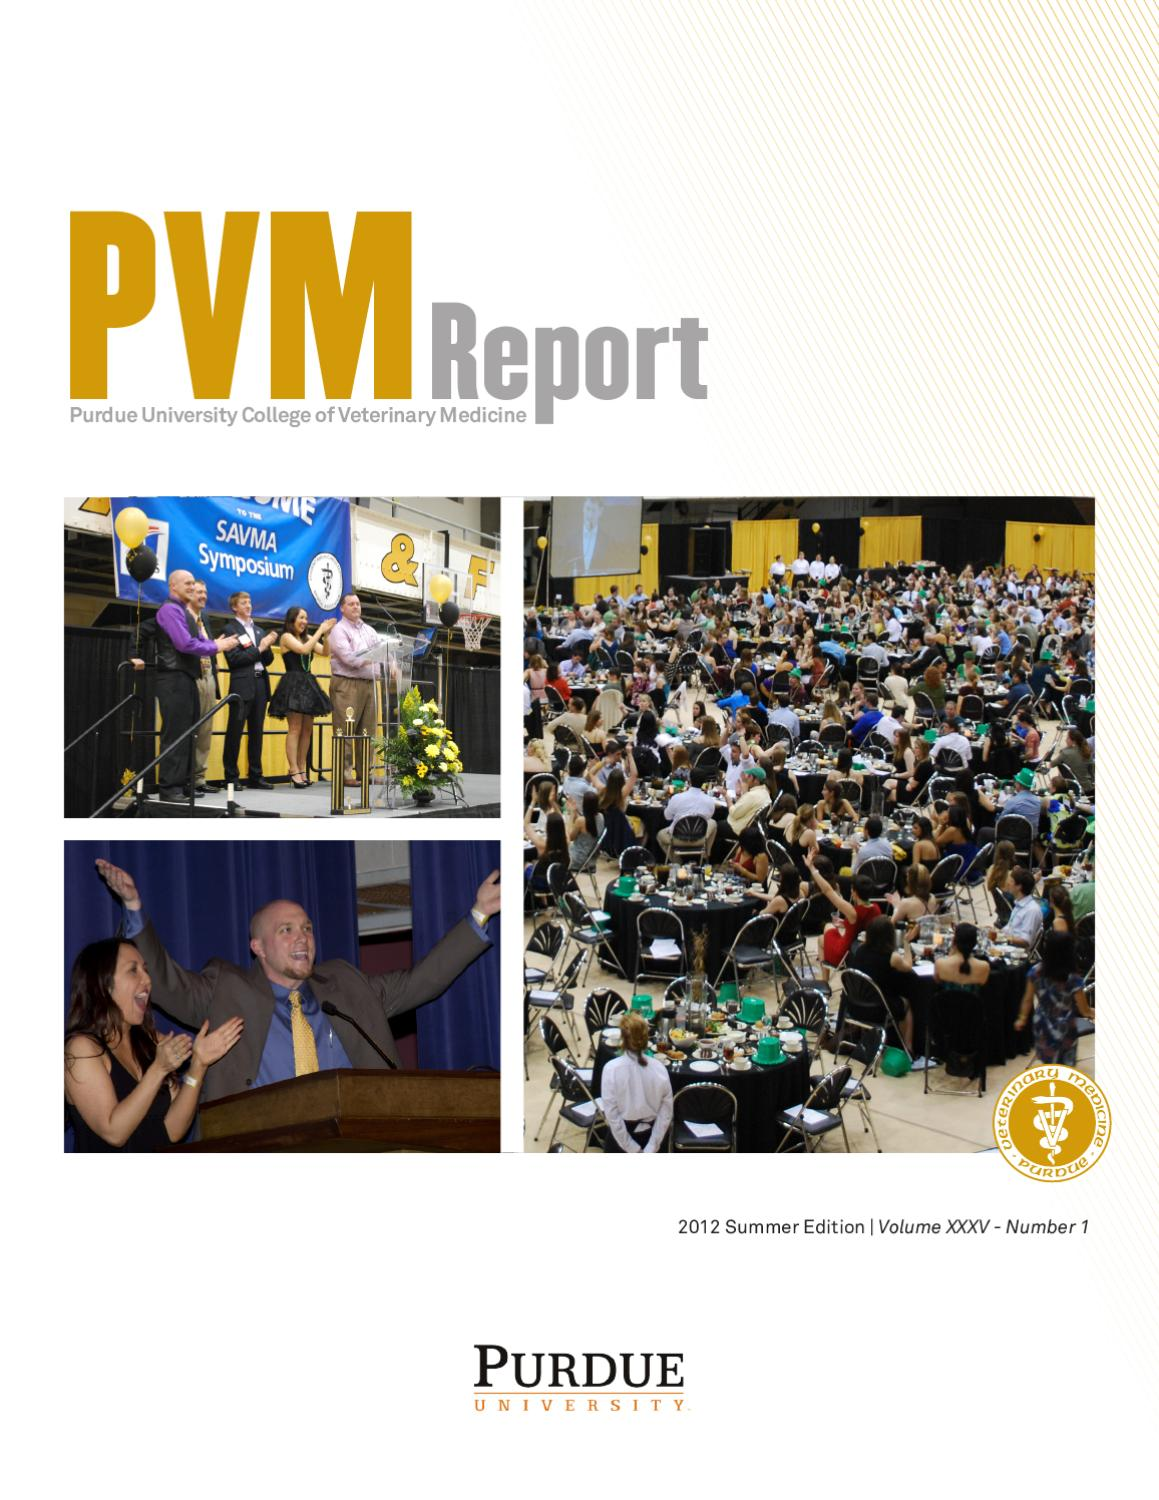 pvm report 2011 annual report by purdue university issuu pvm report 2012 summer report